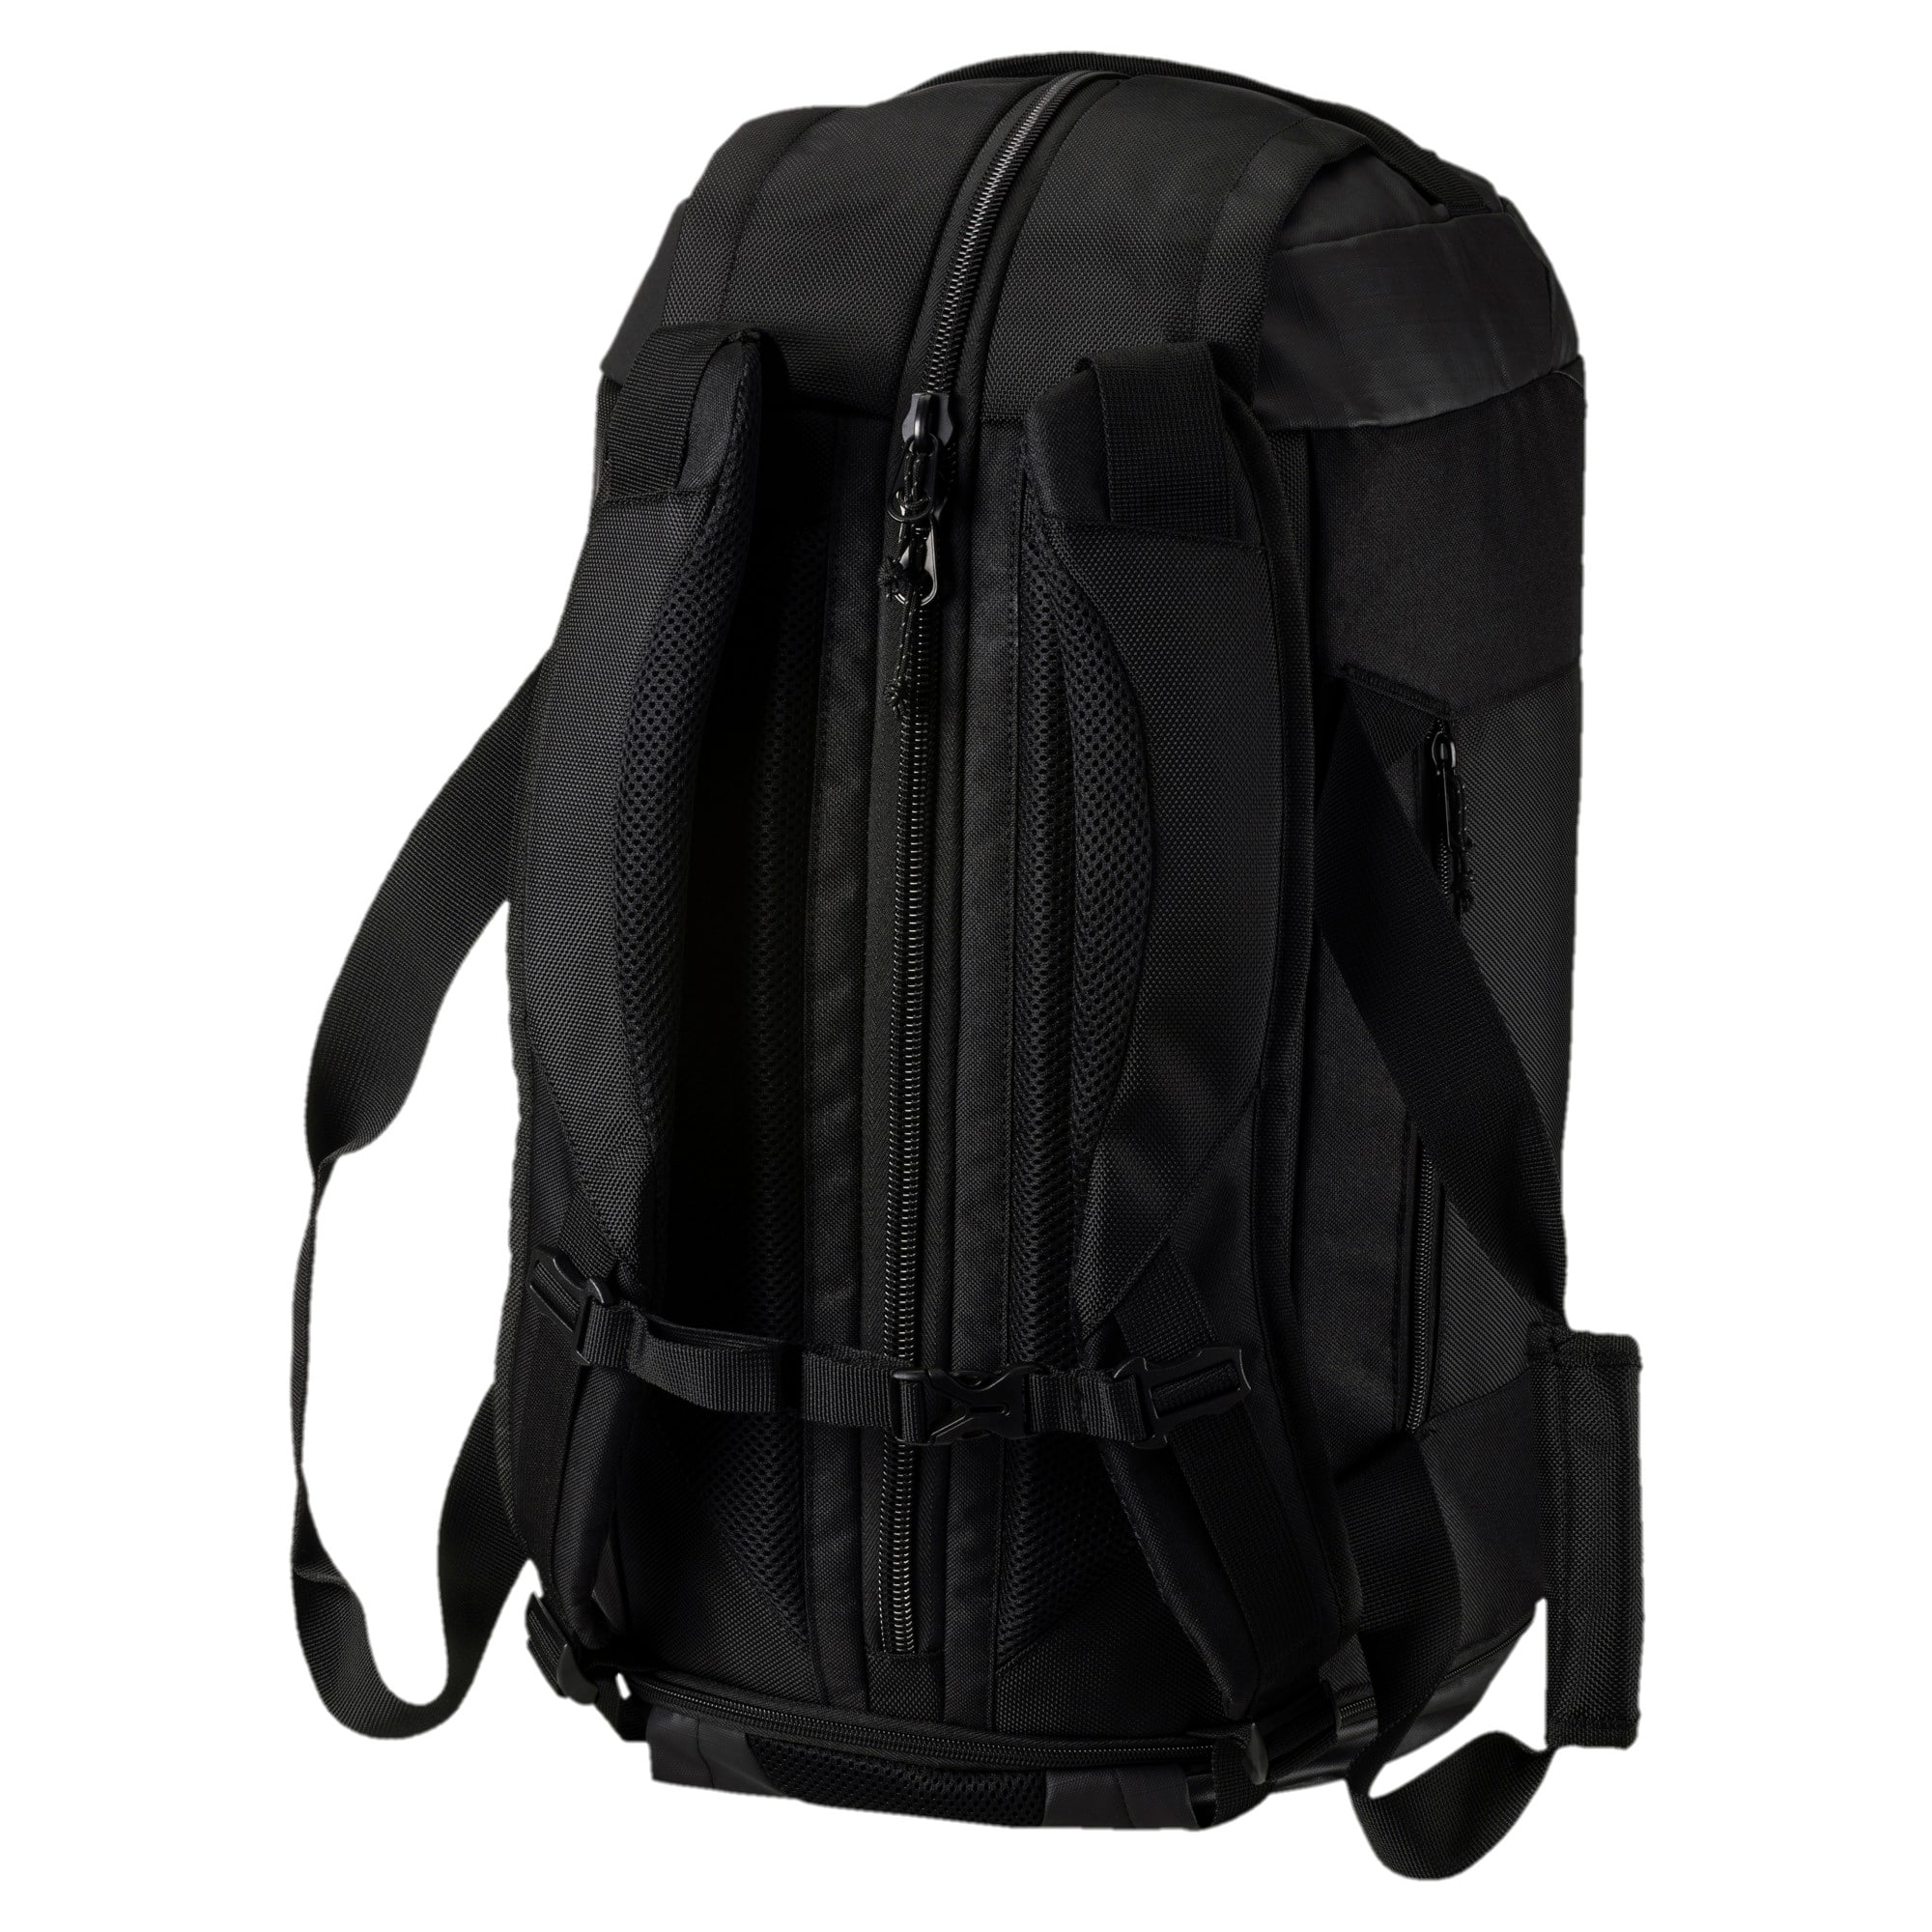 Energy 2-in-1 Backpack, Puma Black, large